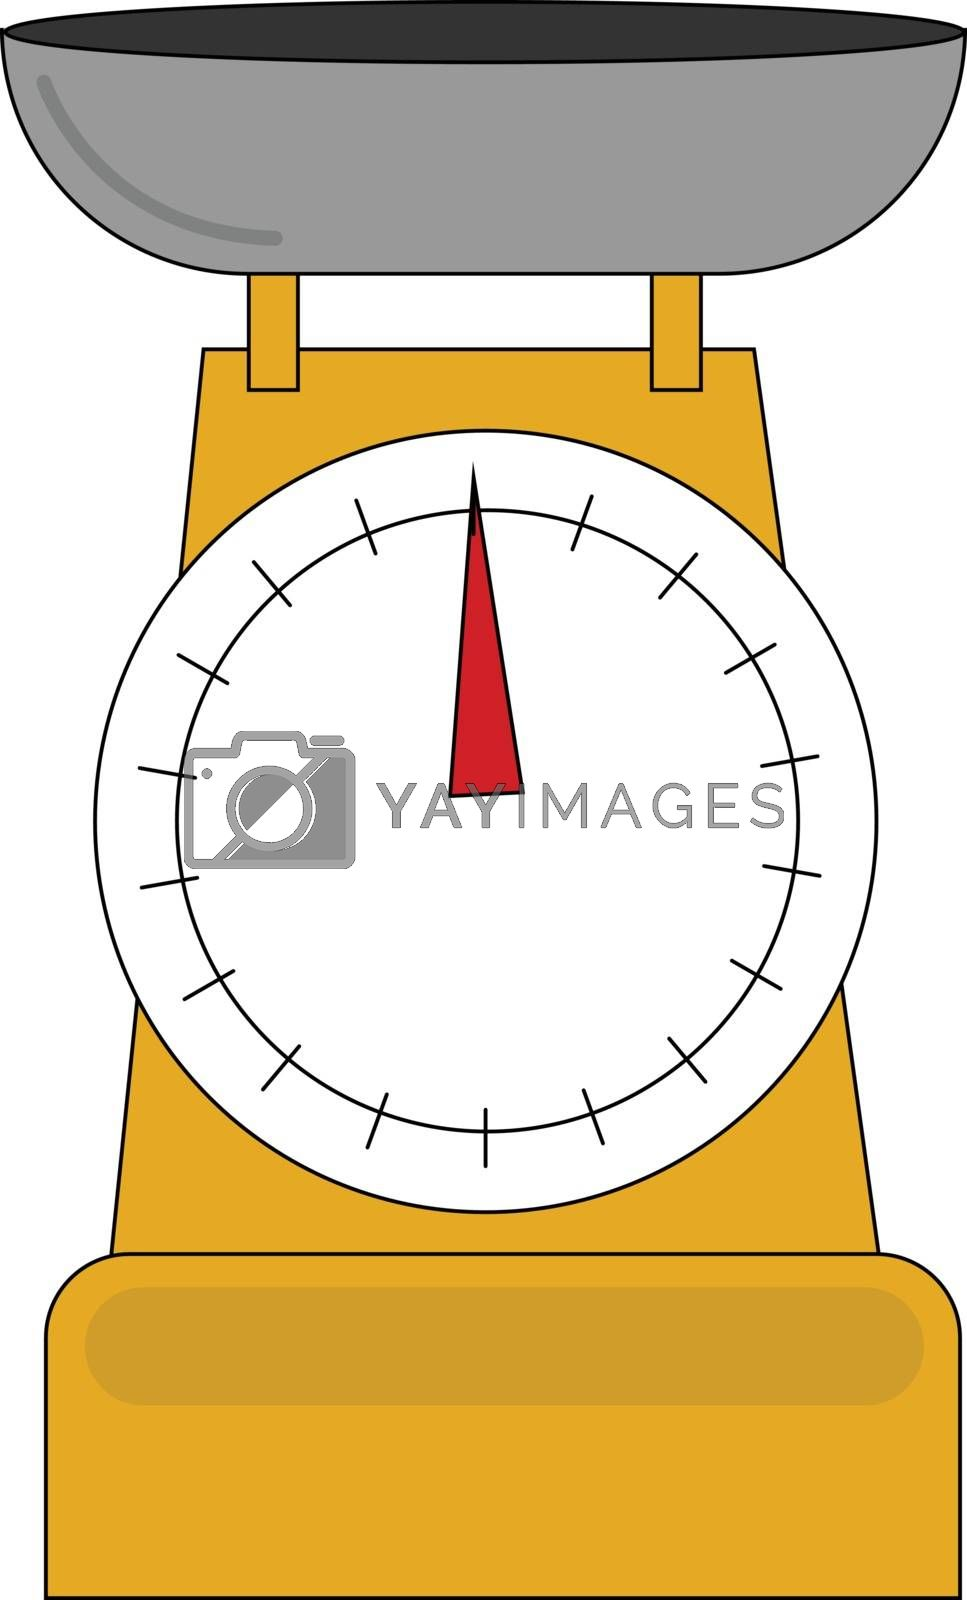 Royalty free image of Clipart of yellow-colored Libra weighing scale/Mechanical dial s by Morphart